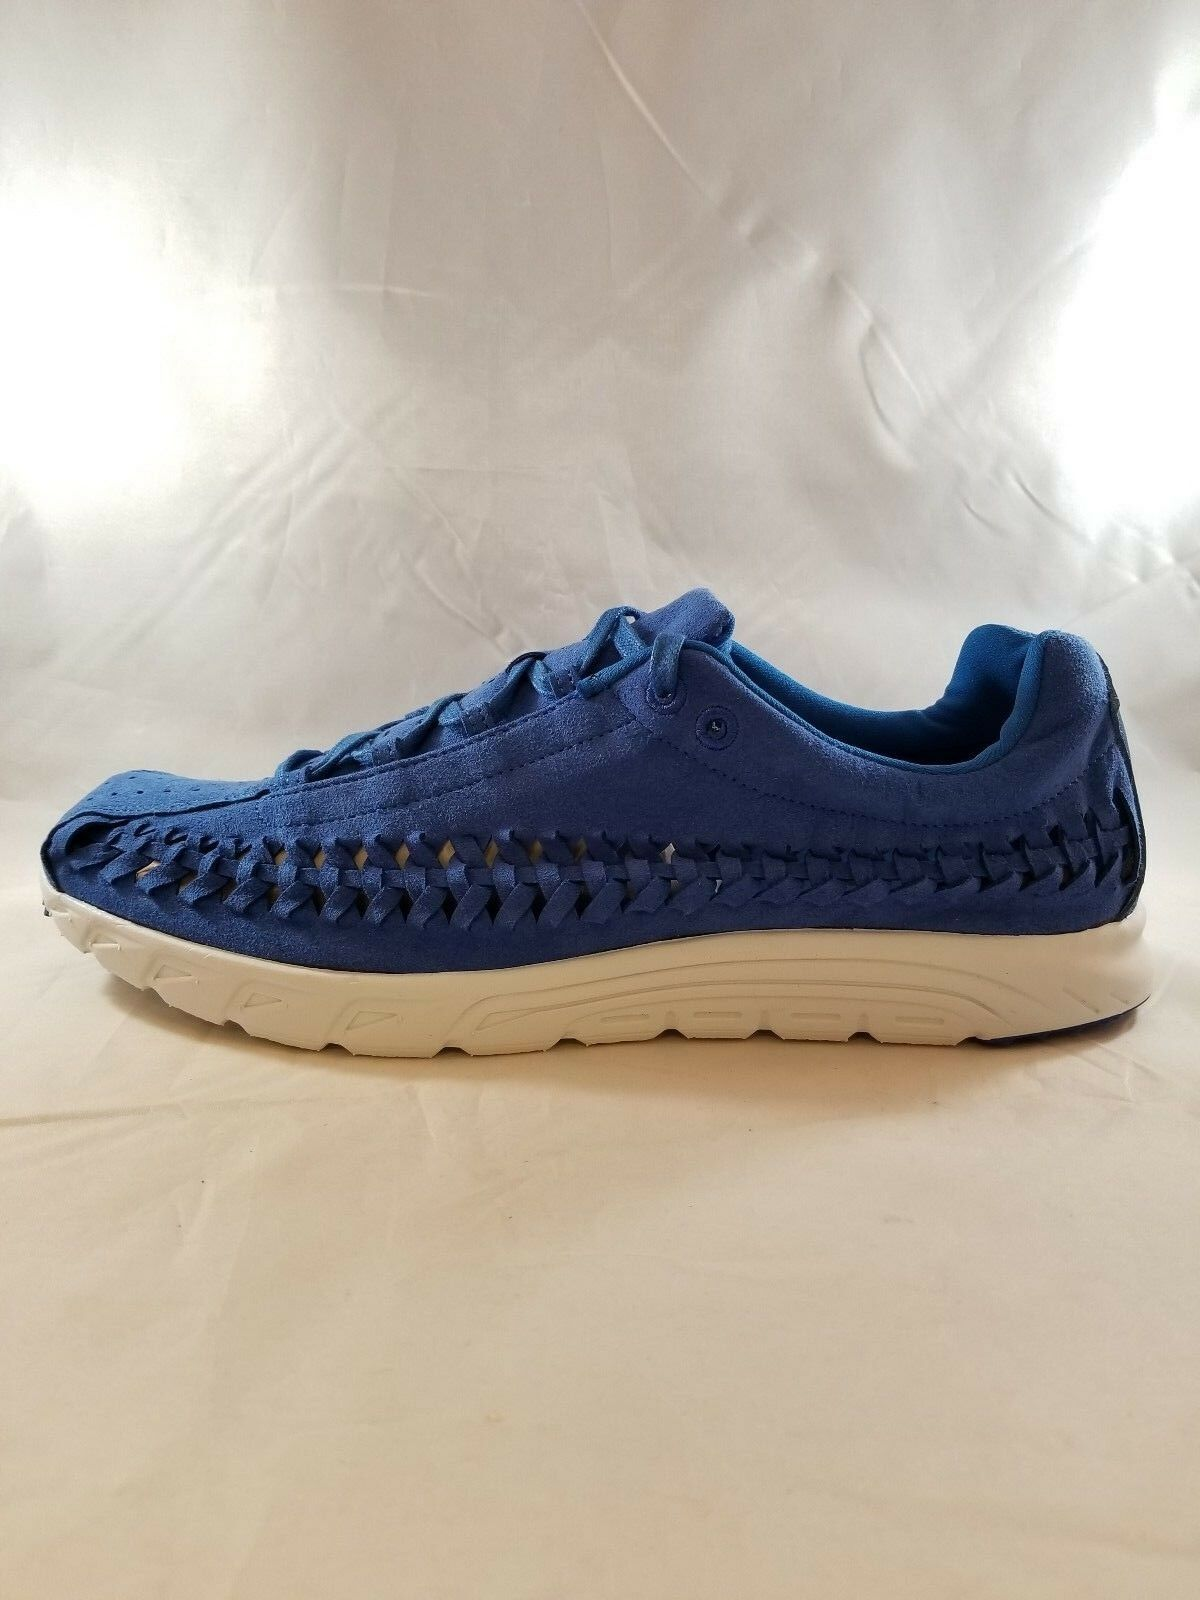 Nike Mayfly Woven Men's Lifestyle shoes 833132 401 Size 13